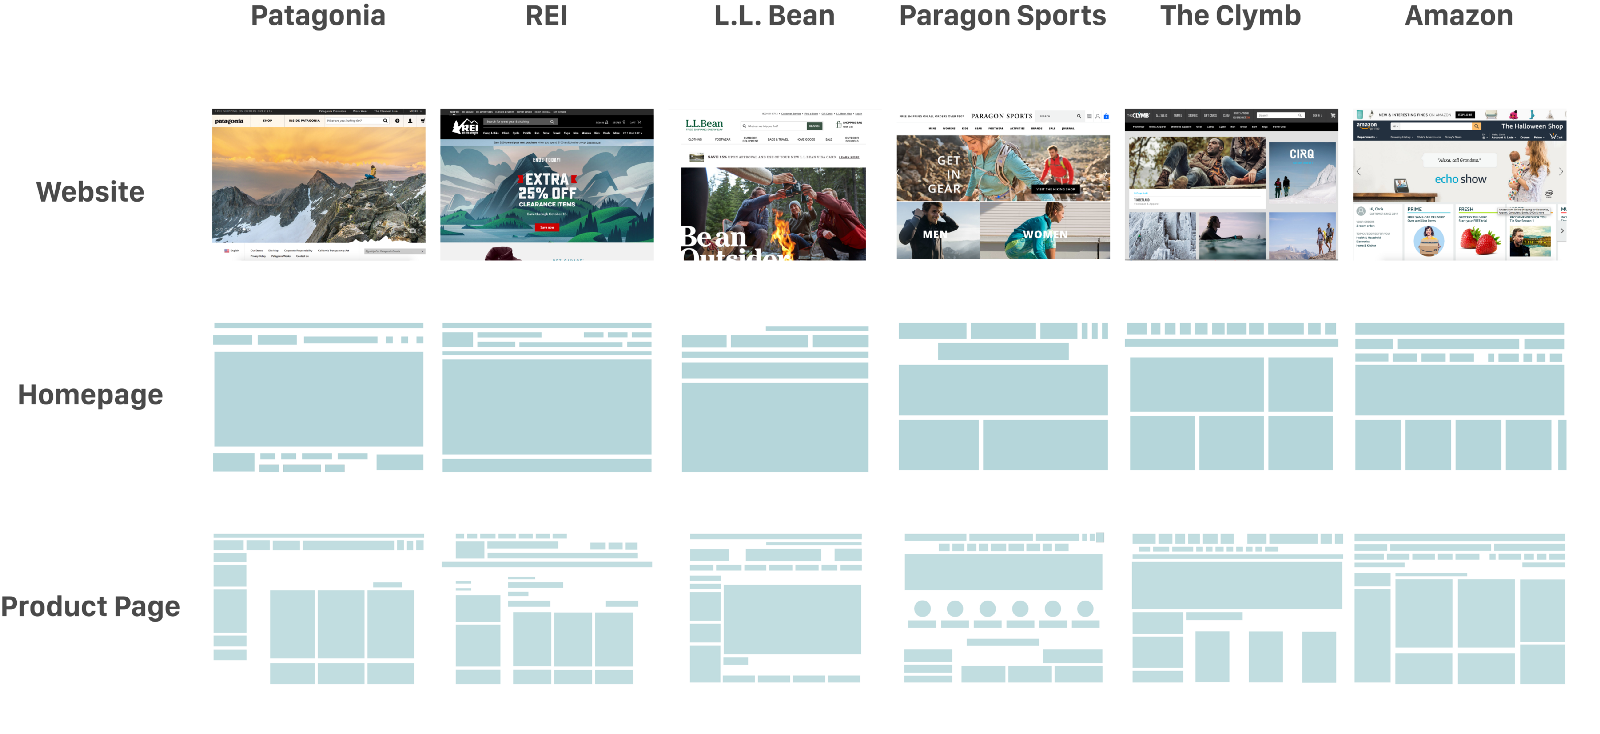 Layout of REI s website vs competitors identified in the screener survey. a12c021c162a9